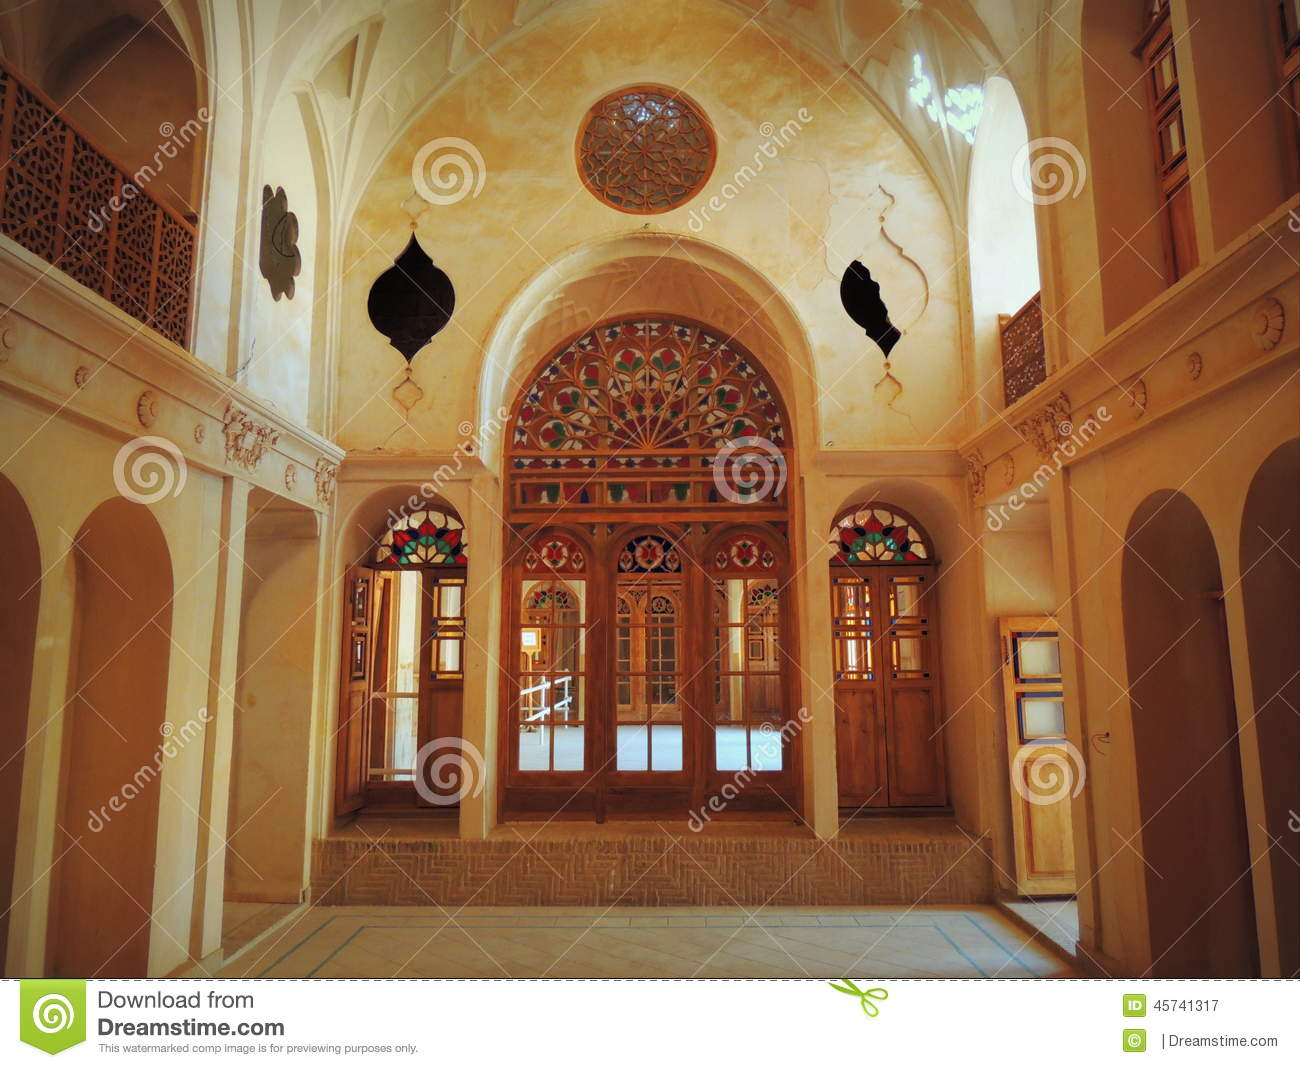 Stained Glass Doors Windows Rose Inside Muslim Palace